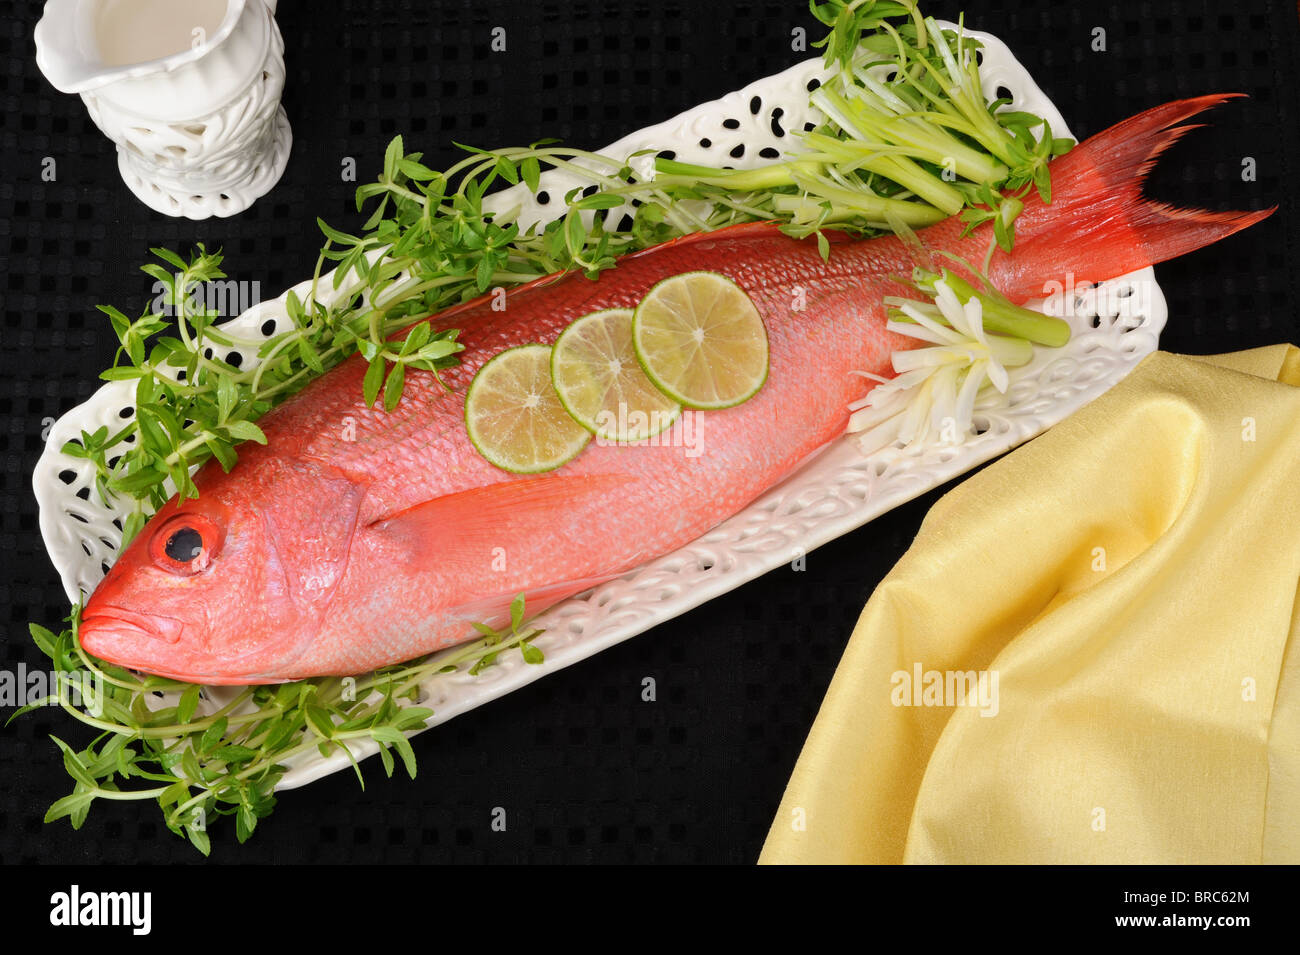 Red Snapper Fish Stock Photo